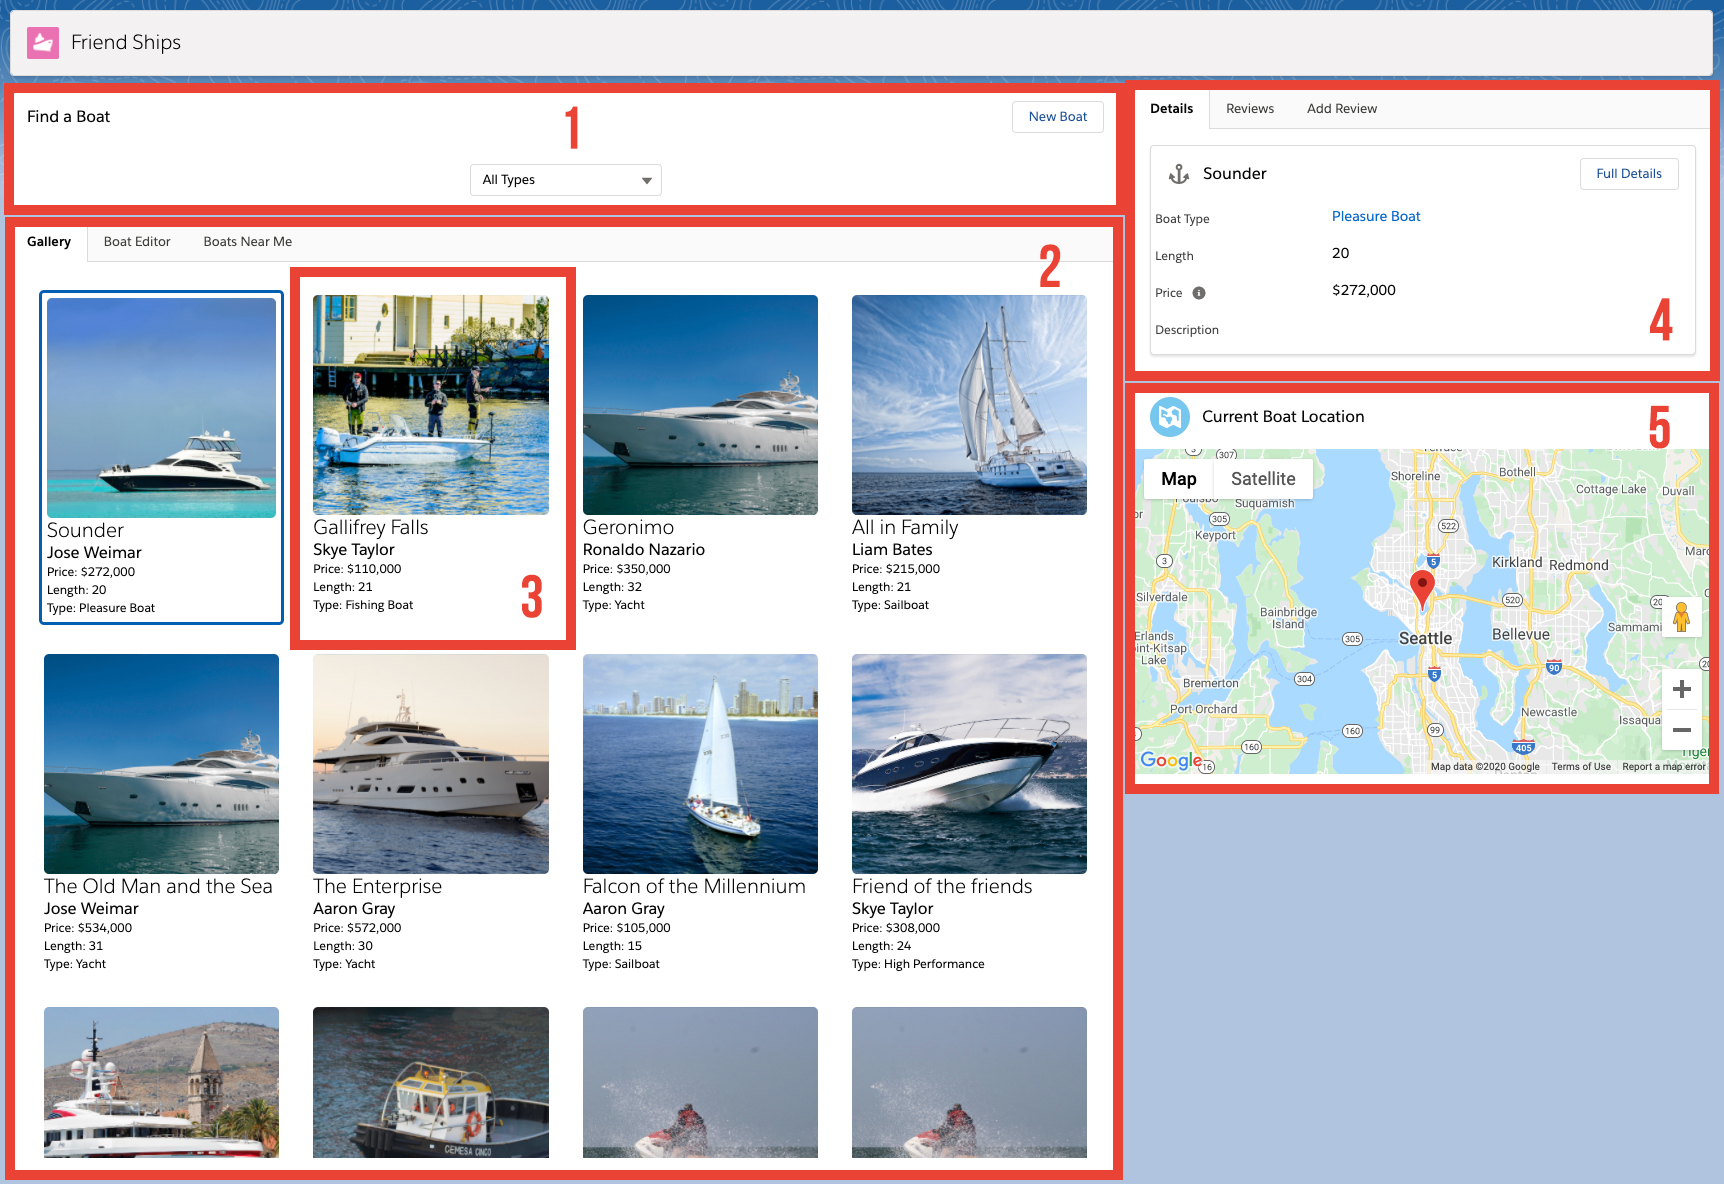 Main screen, divided into five different sections. 1. Find a Boat. 2. Search Results. 3. Boat Tile. 4. Record details plus reviews. 5. Current boat location.